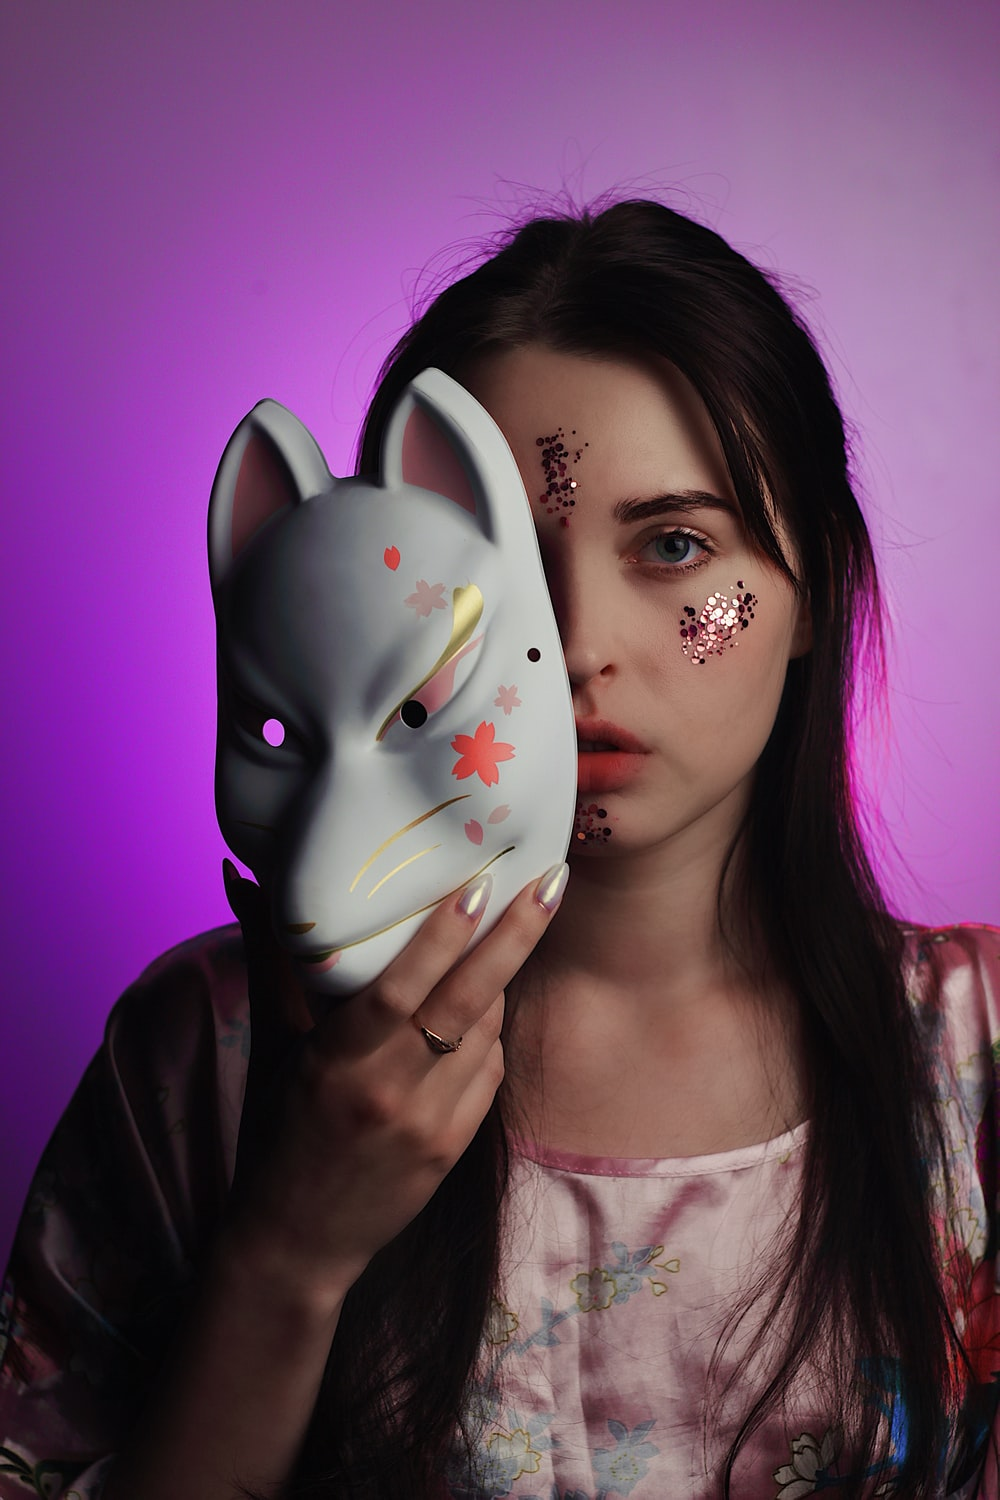 woman holding white and pink cat face mask standing in front of purple background